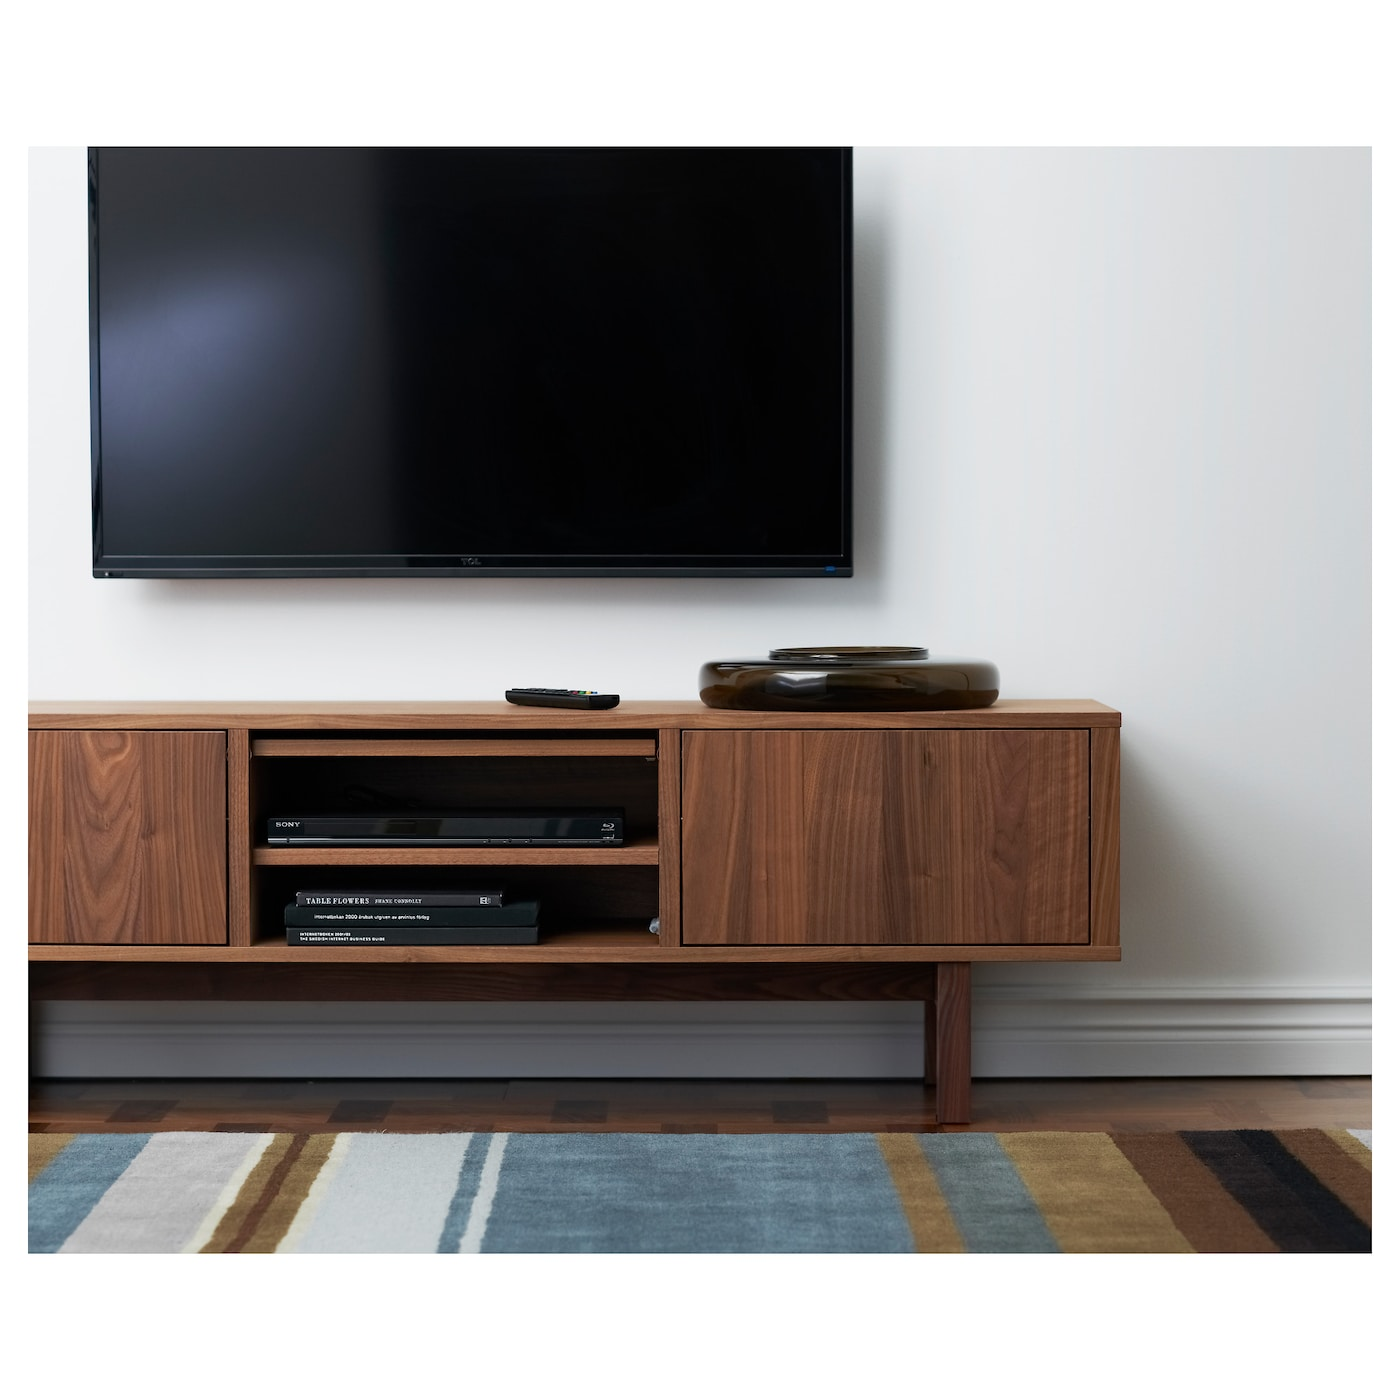 Stockholm tv bench walnut veneer 160 x 40 x 50 cm ikea for Ikea mobile tv